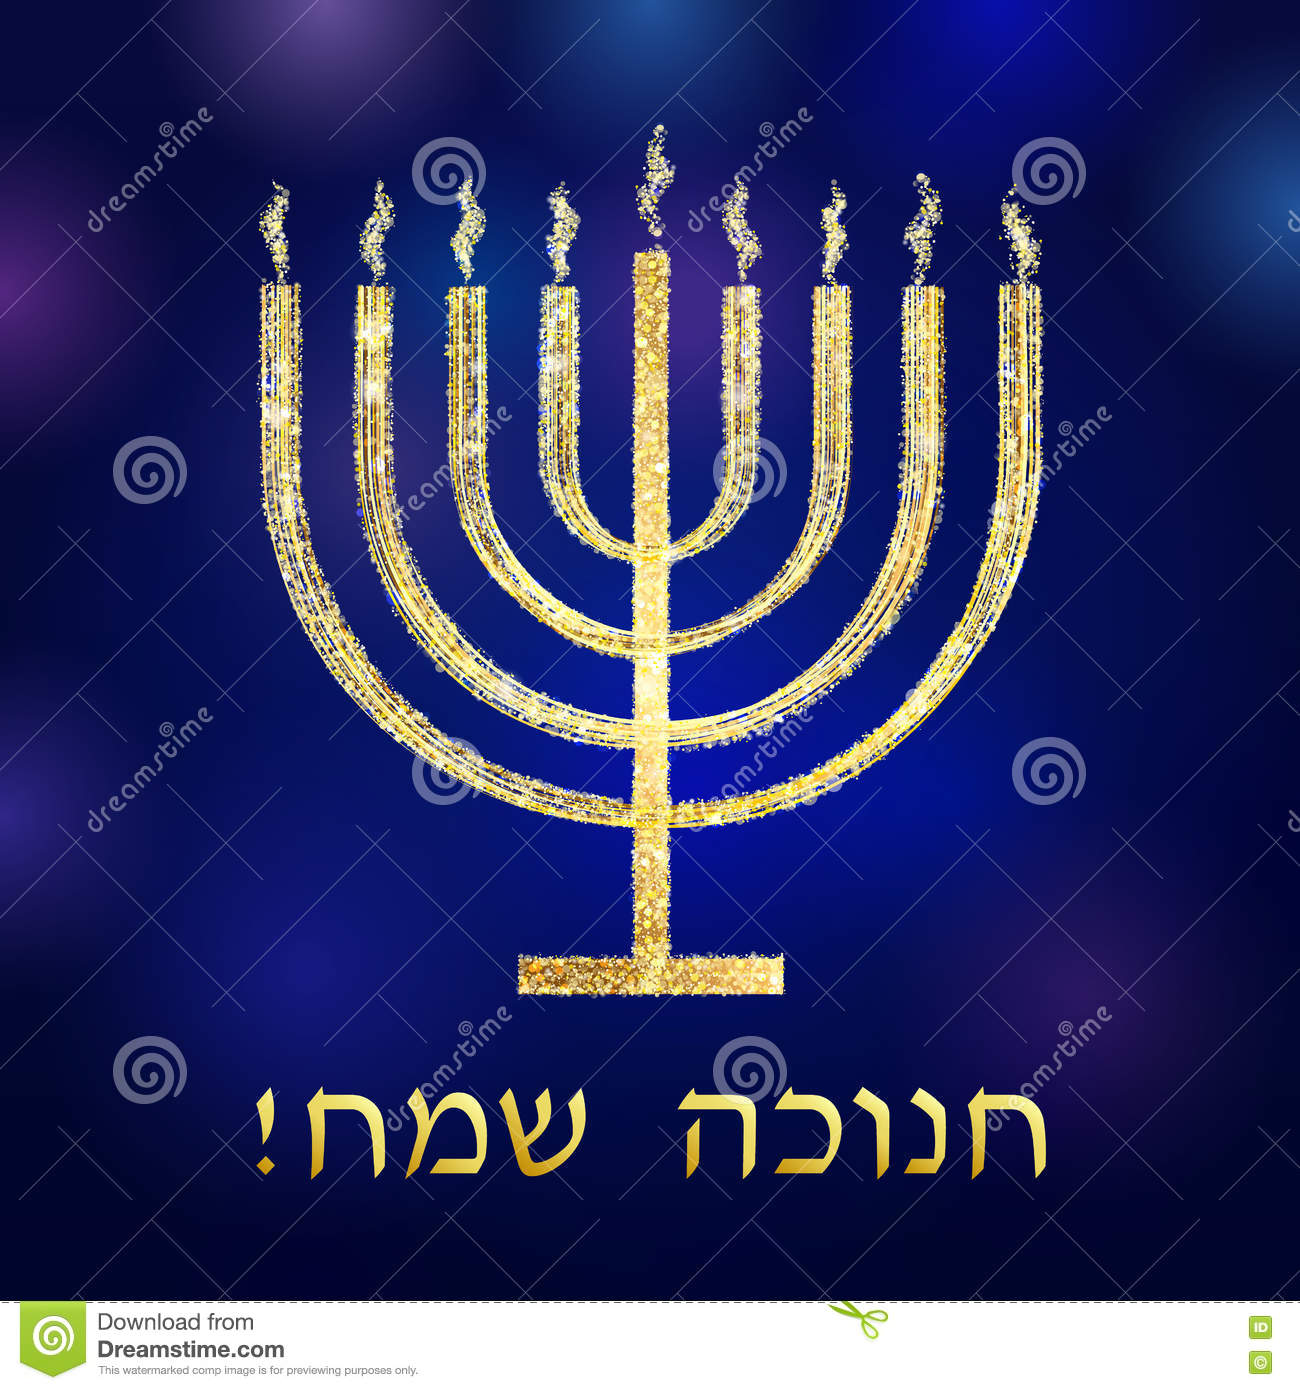 Happy Hanukkah Greetings In Hebrew Stock Vector Illustration Of